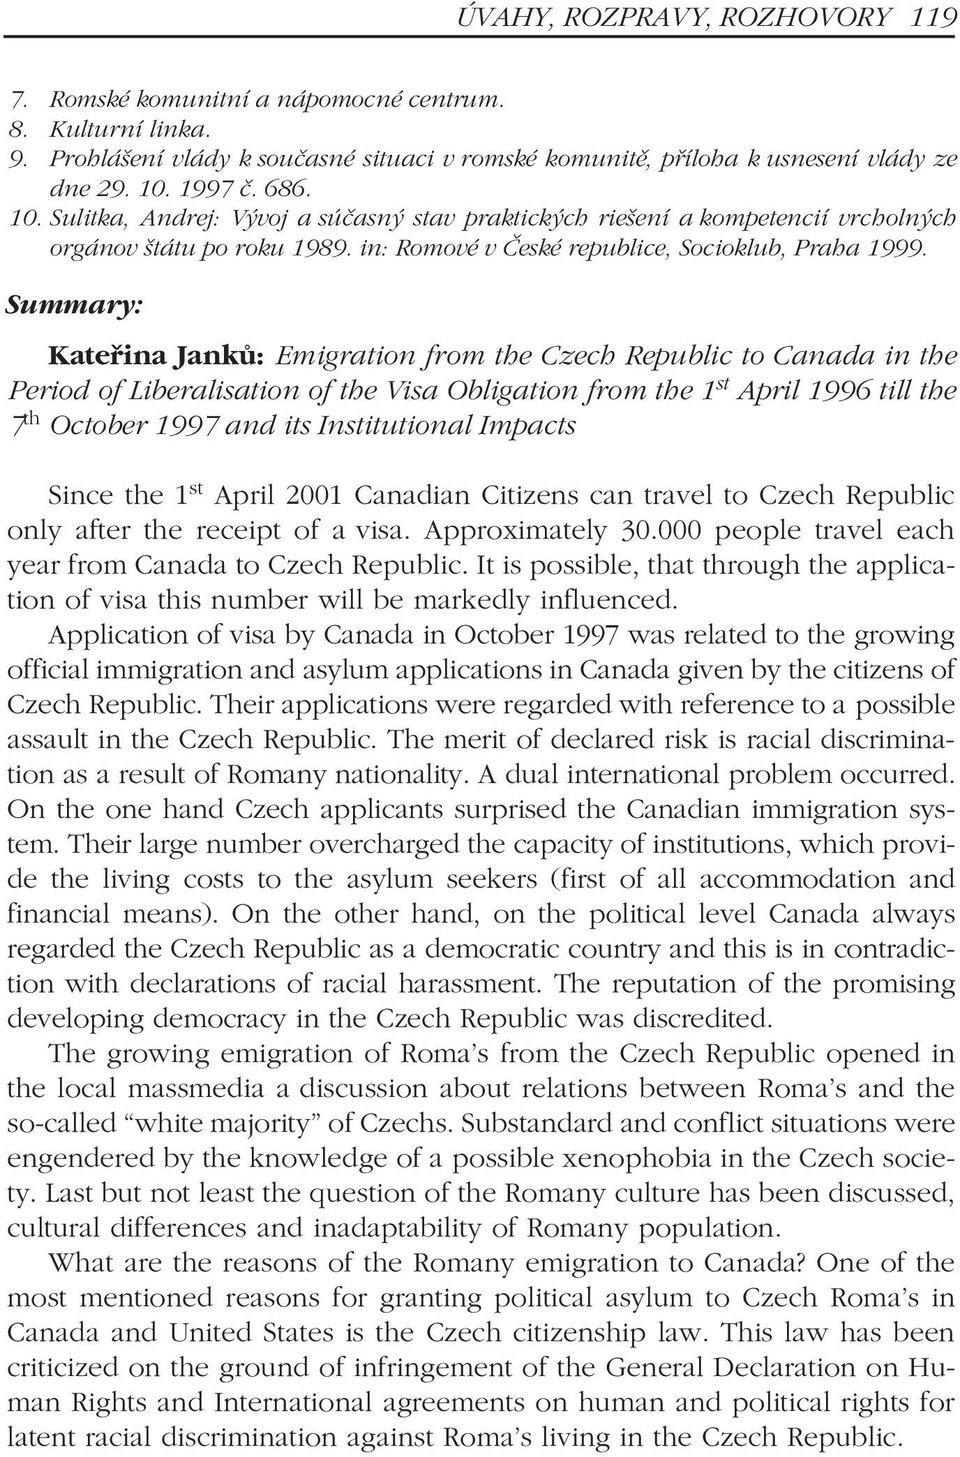 Summary: Kateøina Jankù: Emigration from the Czech Republic to Canada in the Period of Liberalisation of the Visa Obligation from the 1 st April 1996 till the 7 th October 1997 and its Institutional